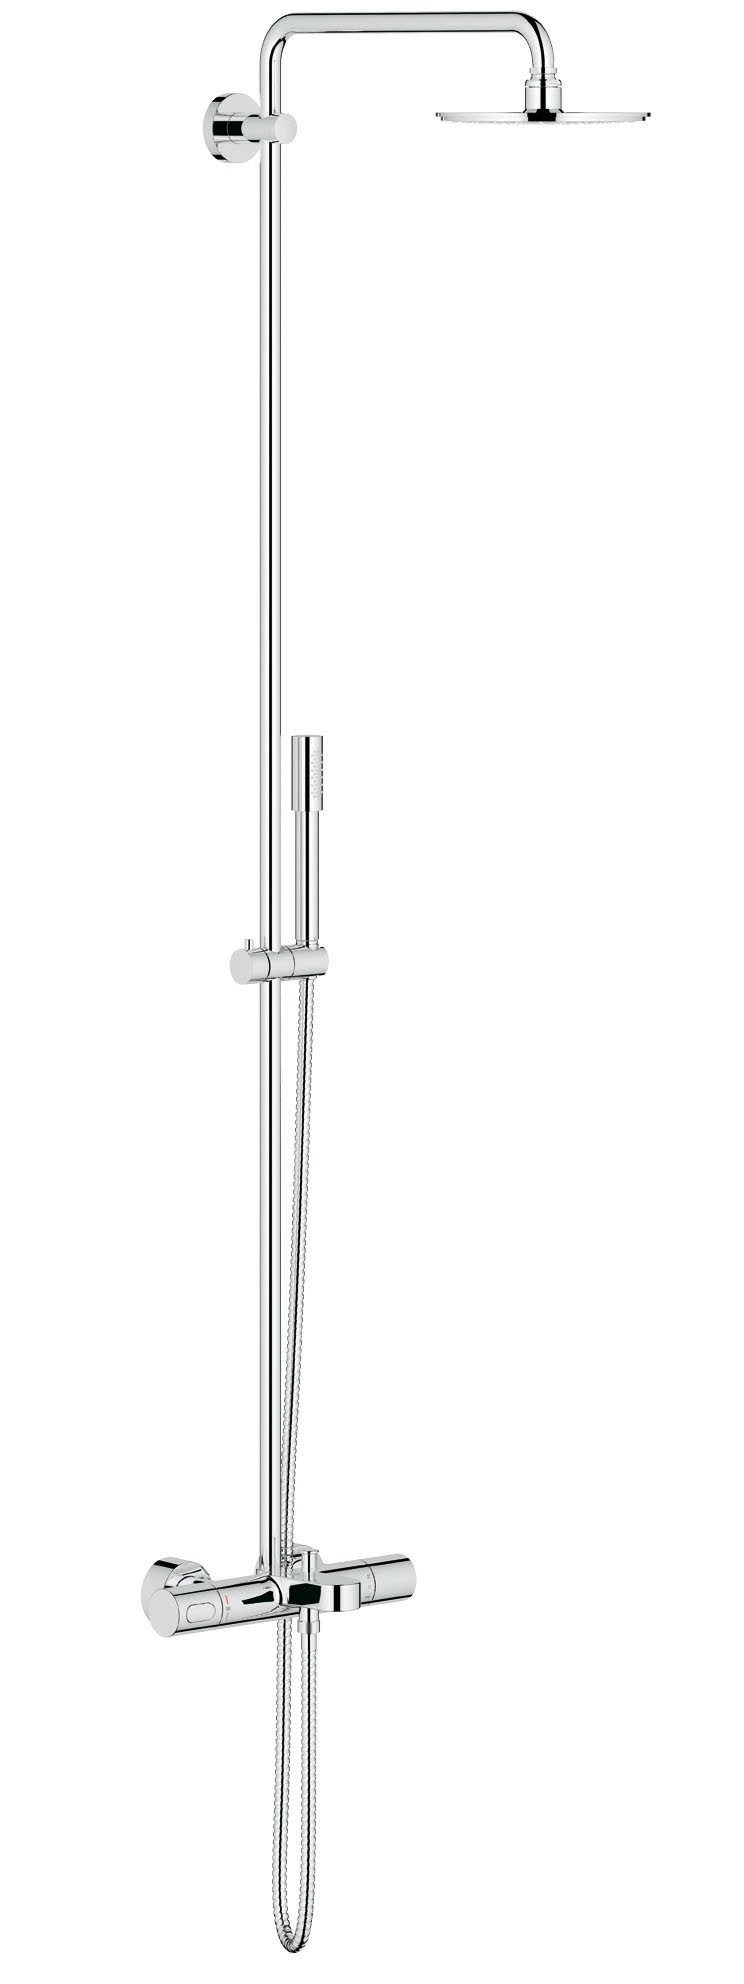 Душевая система Grohe 27641000 Rainshower, хром (27641000)